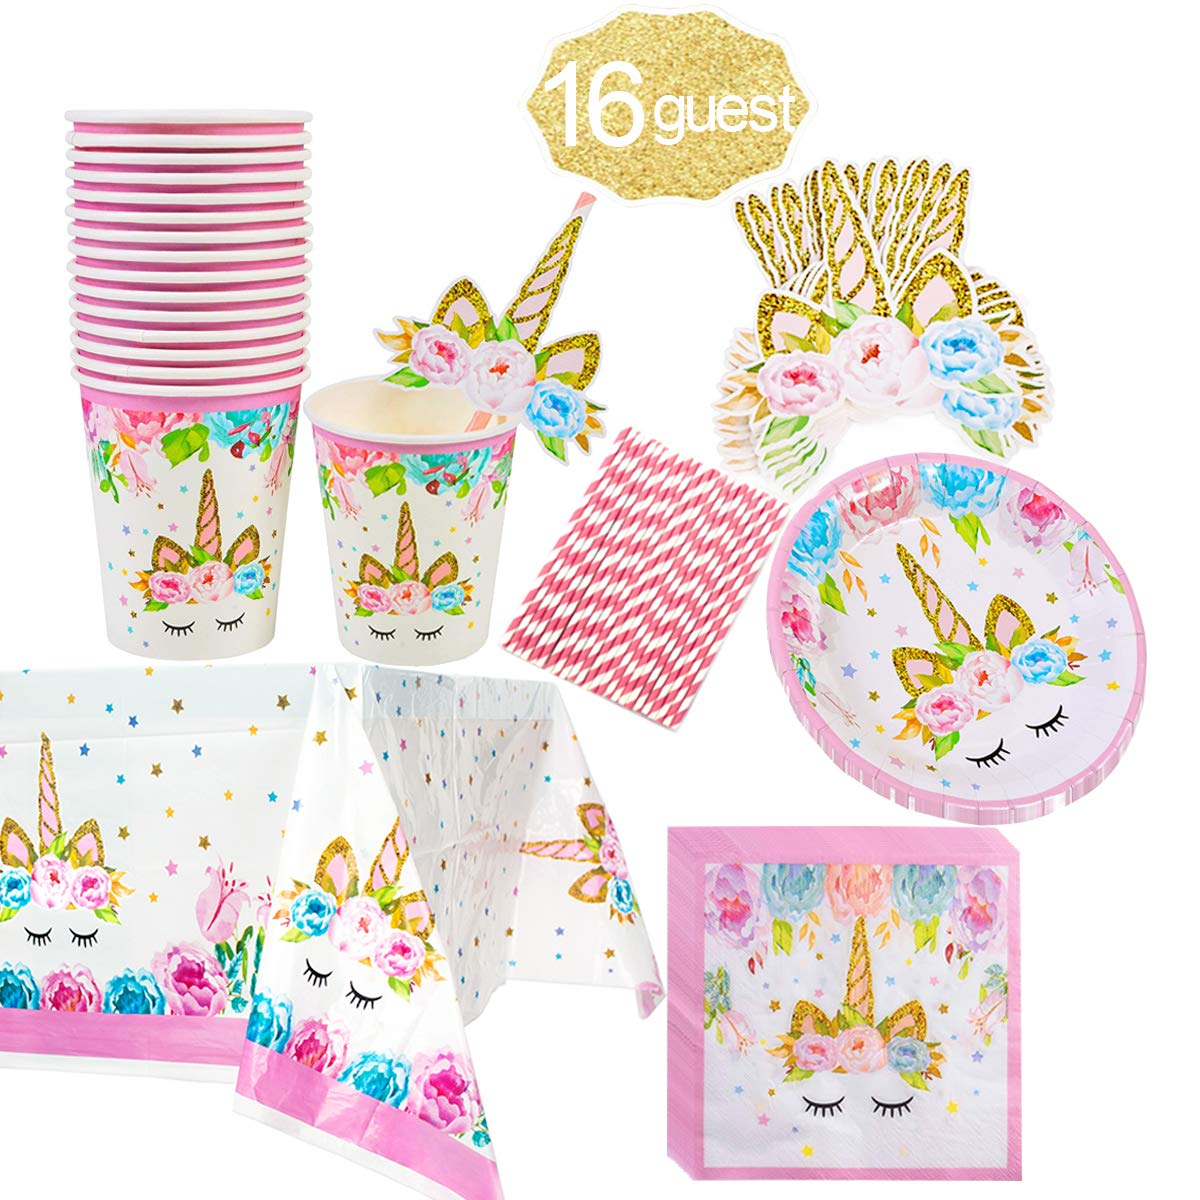 Unicorn Themed Party Supplies Set,Unicorn Cake Plates,Cups,Napkins,Tablecloth,Straws&Decoration,Paper Disposable Tableware Set for Girls Children Birthday Party or First,Baby Shower, Serves 16 Guests